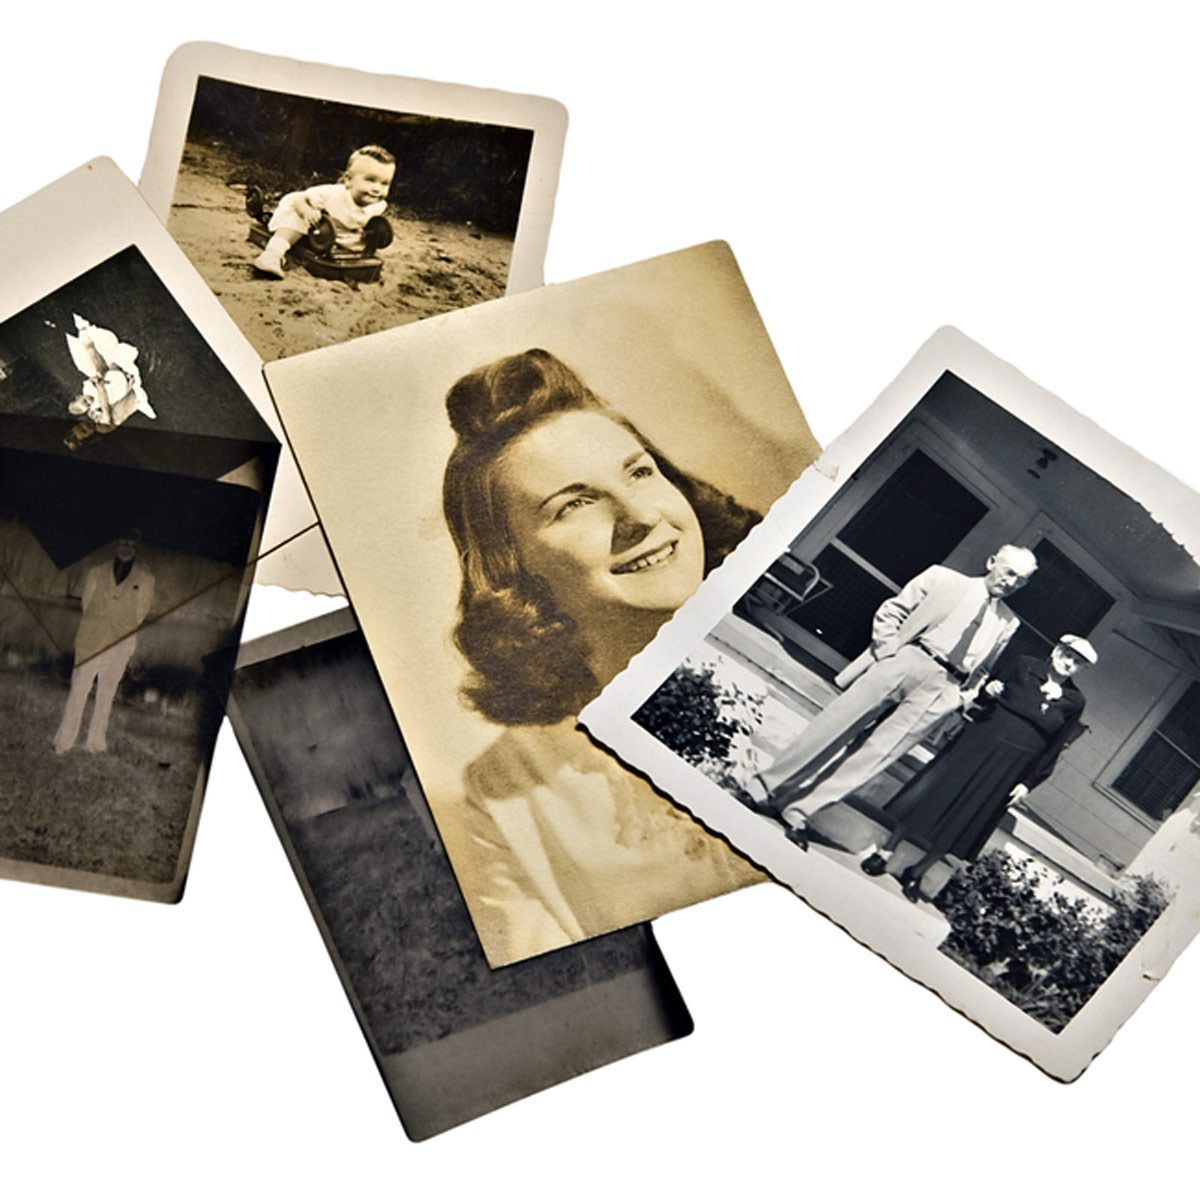 restore old print photos photographs polaroids memories